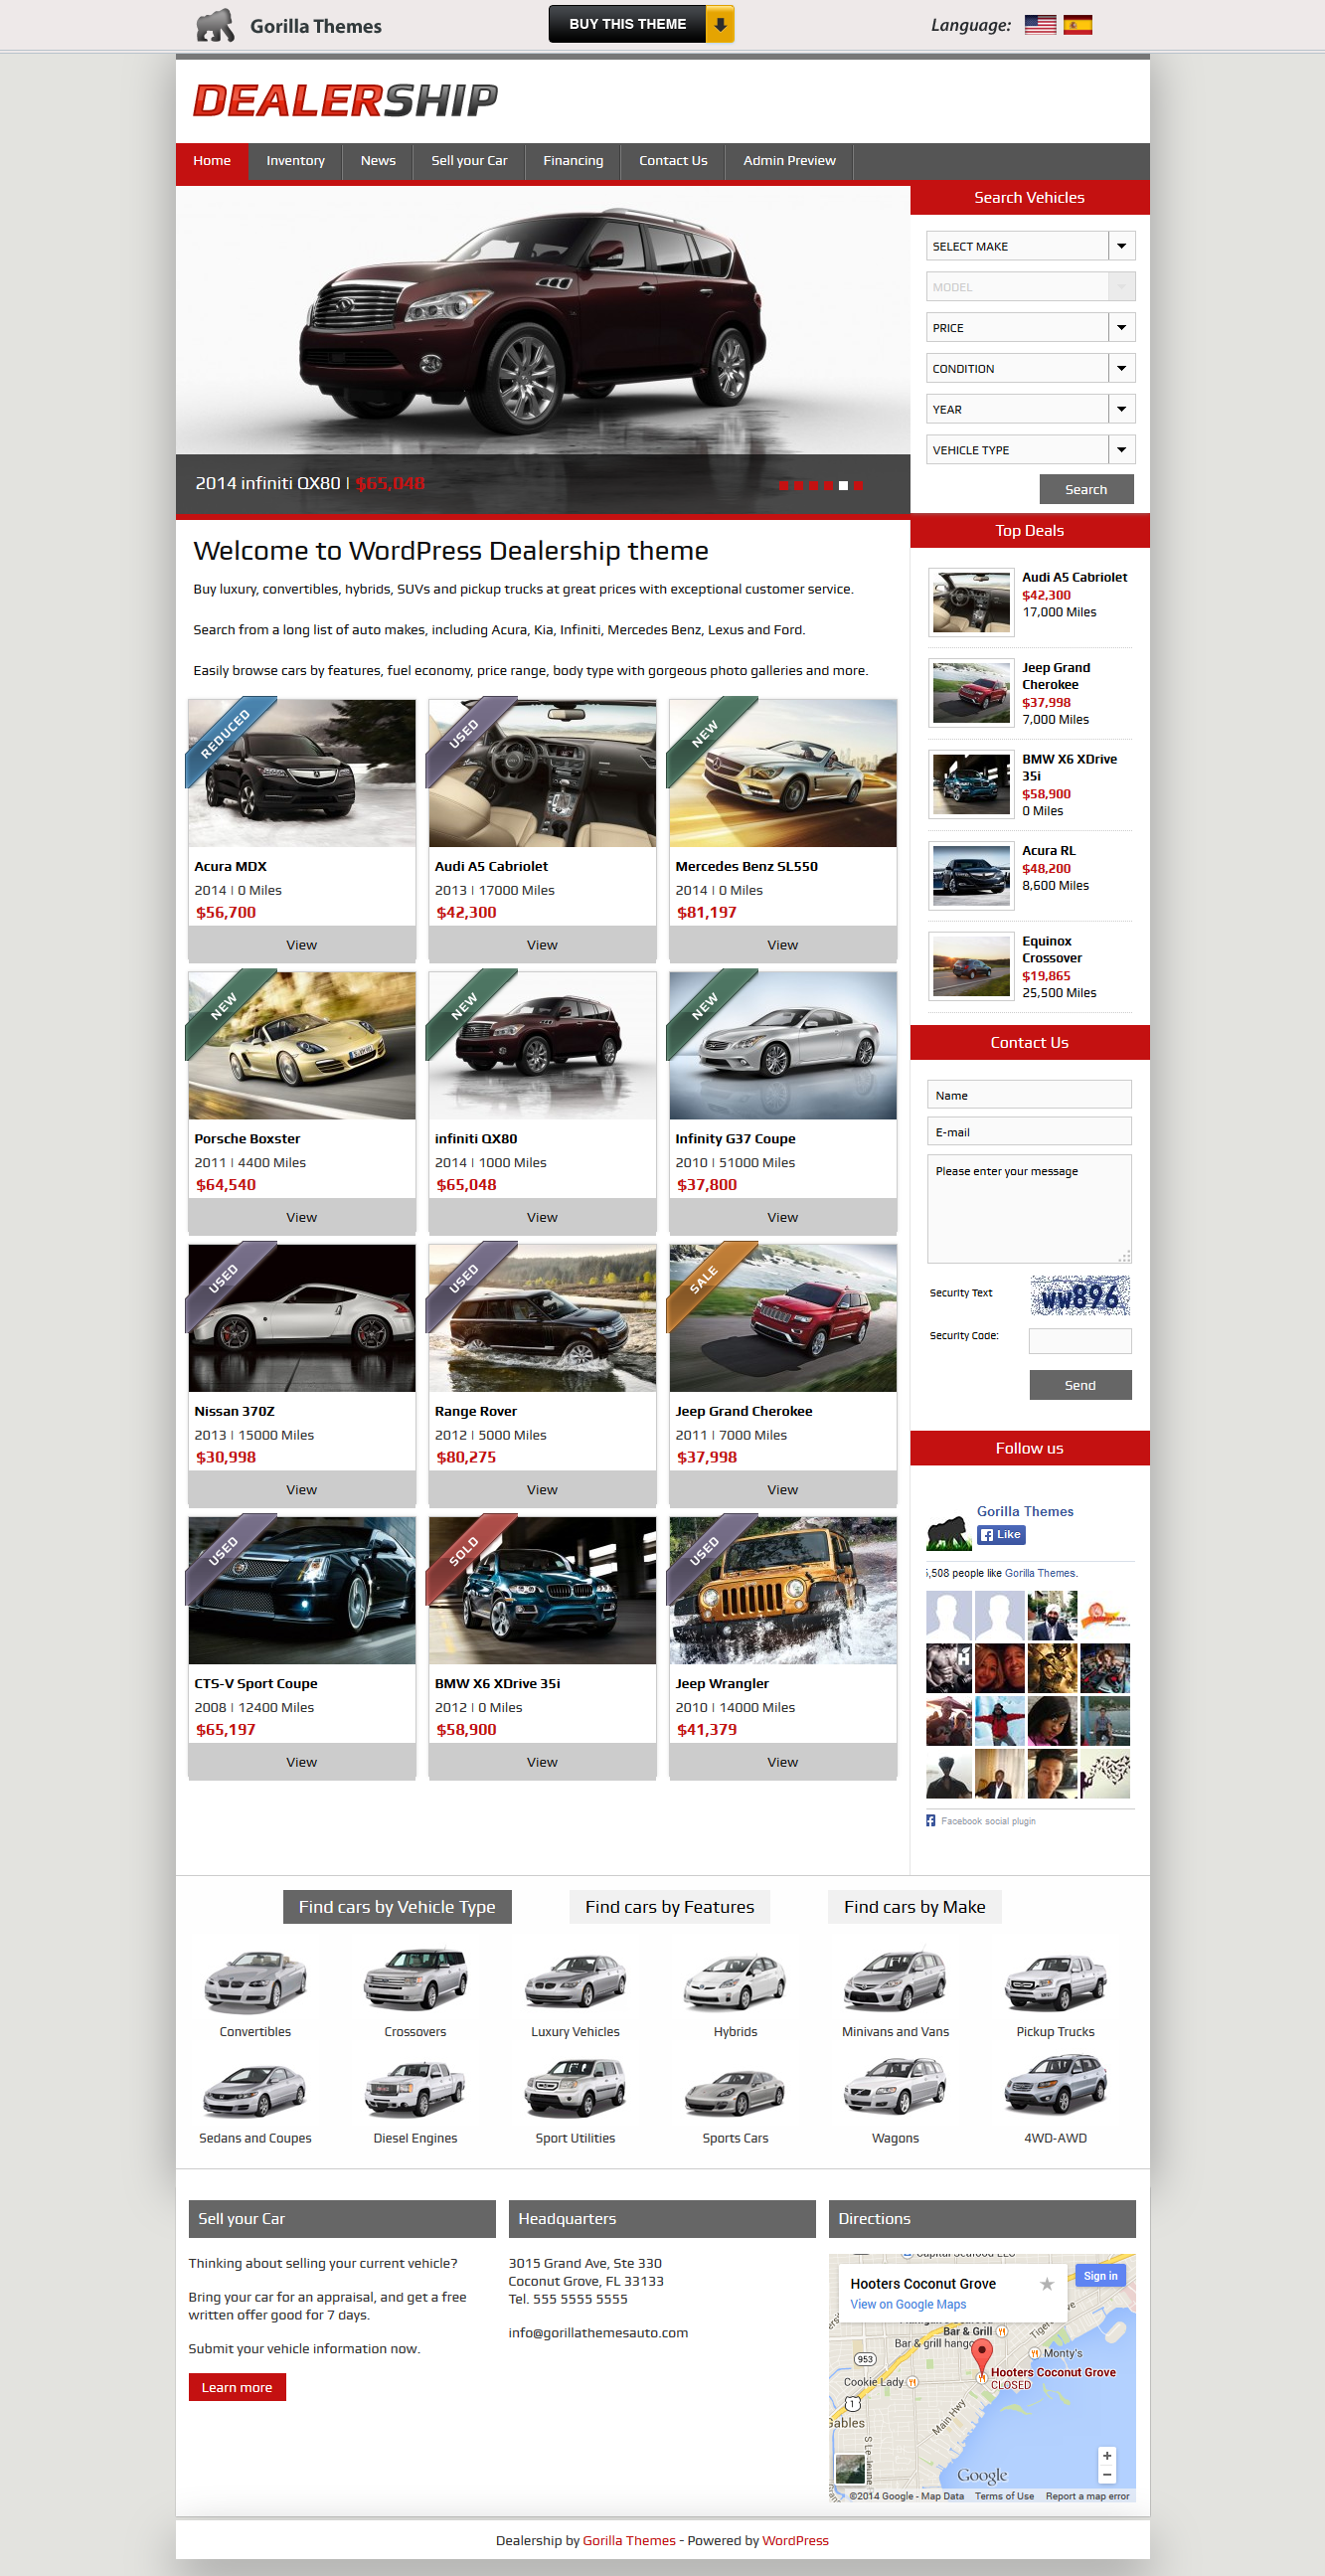 Dealership From Gorilla Themes A Stunning Wordpress Theme